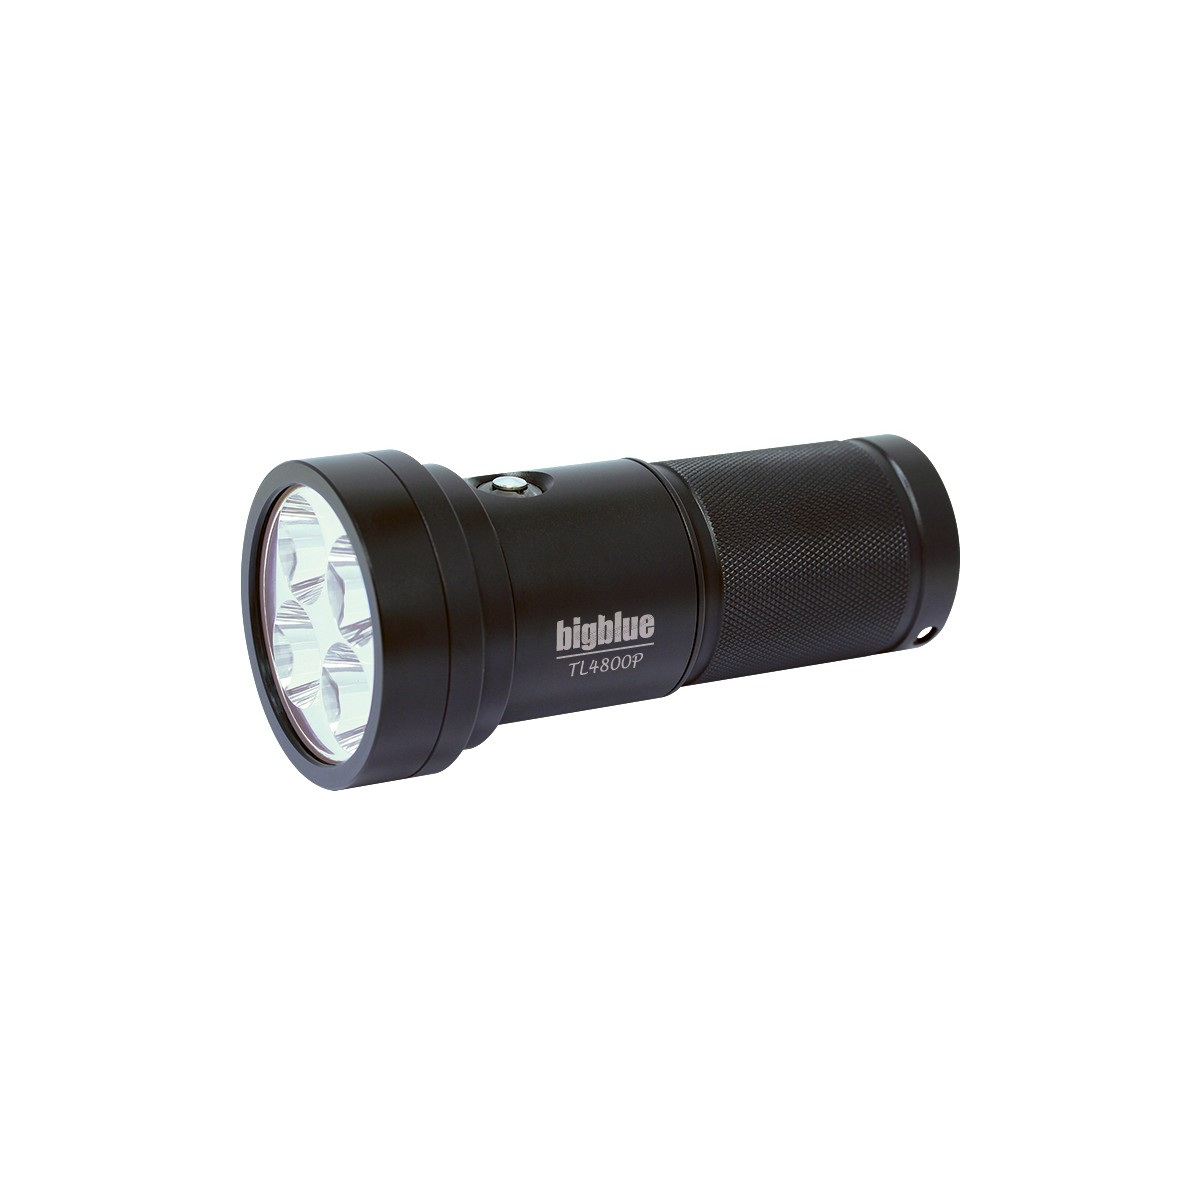 Bigblue 4800 Lumen Tech Light (TL4800P)